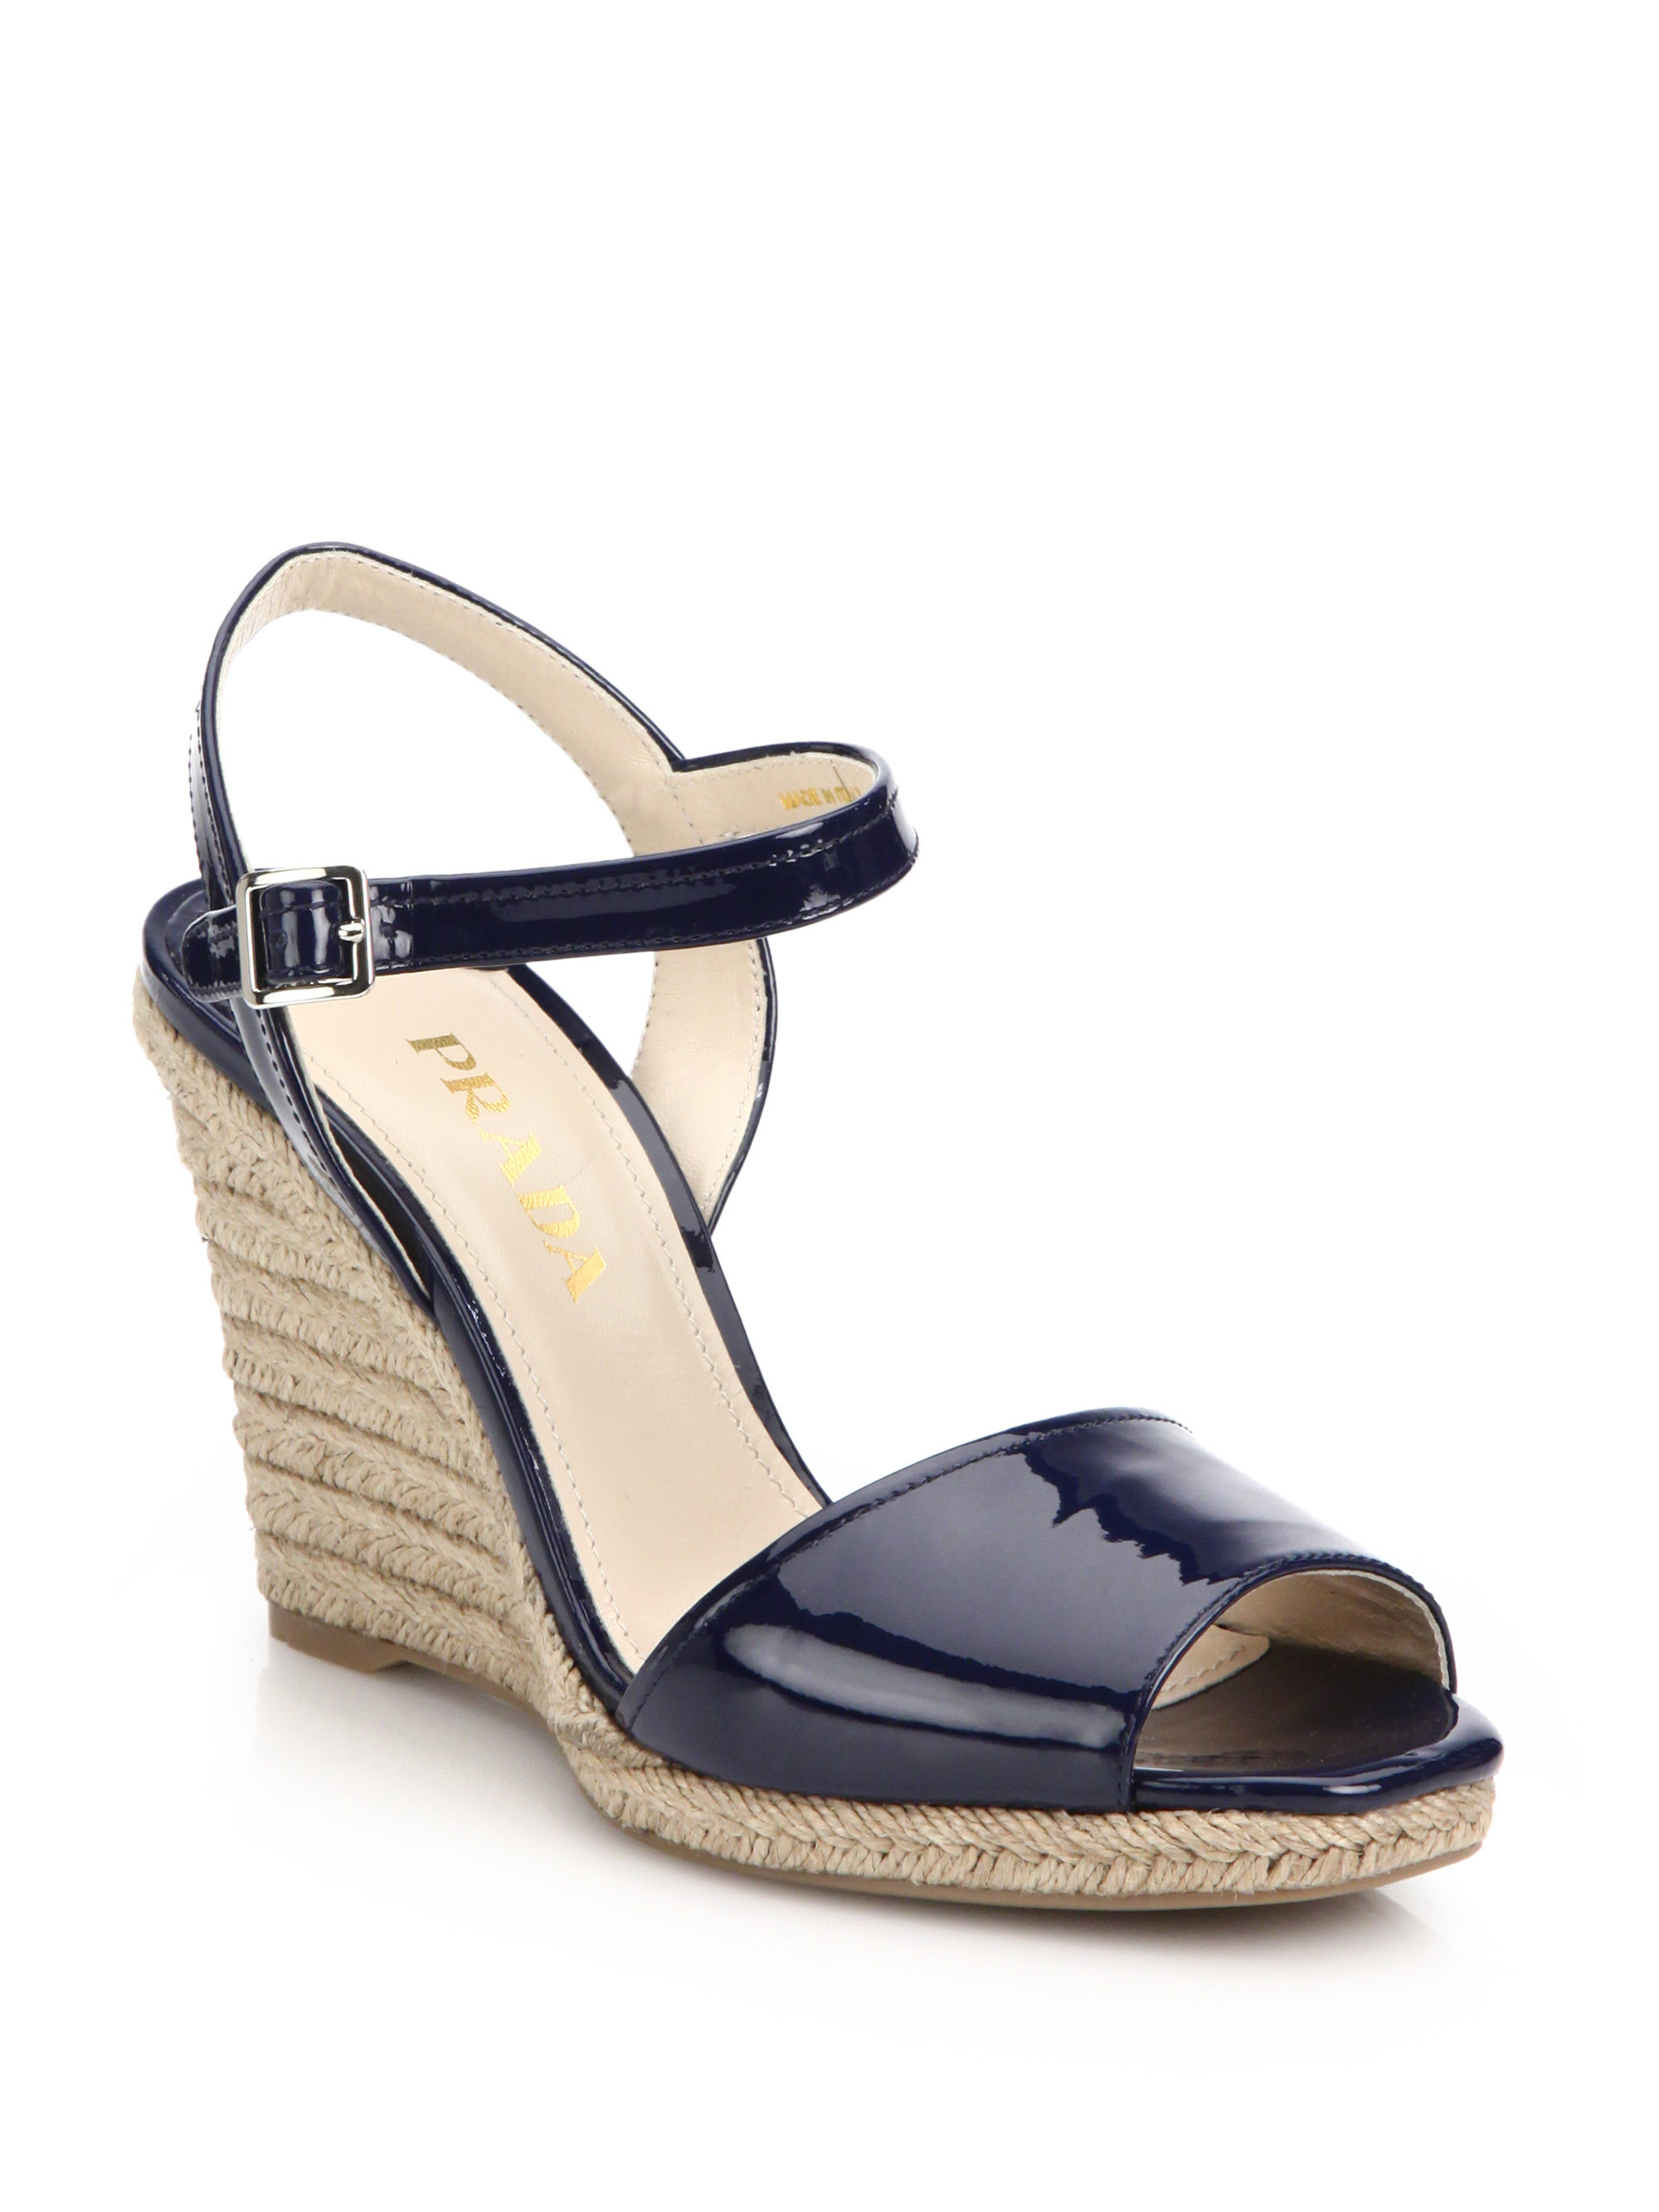 Lyst Prada Patent Leather Espadrille Wedge Sandals In Blue